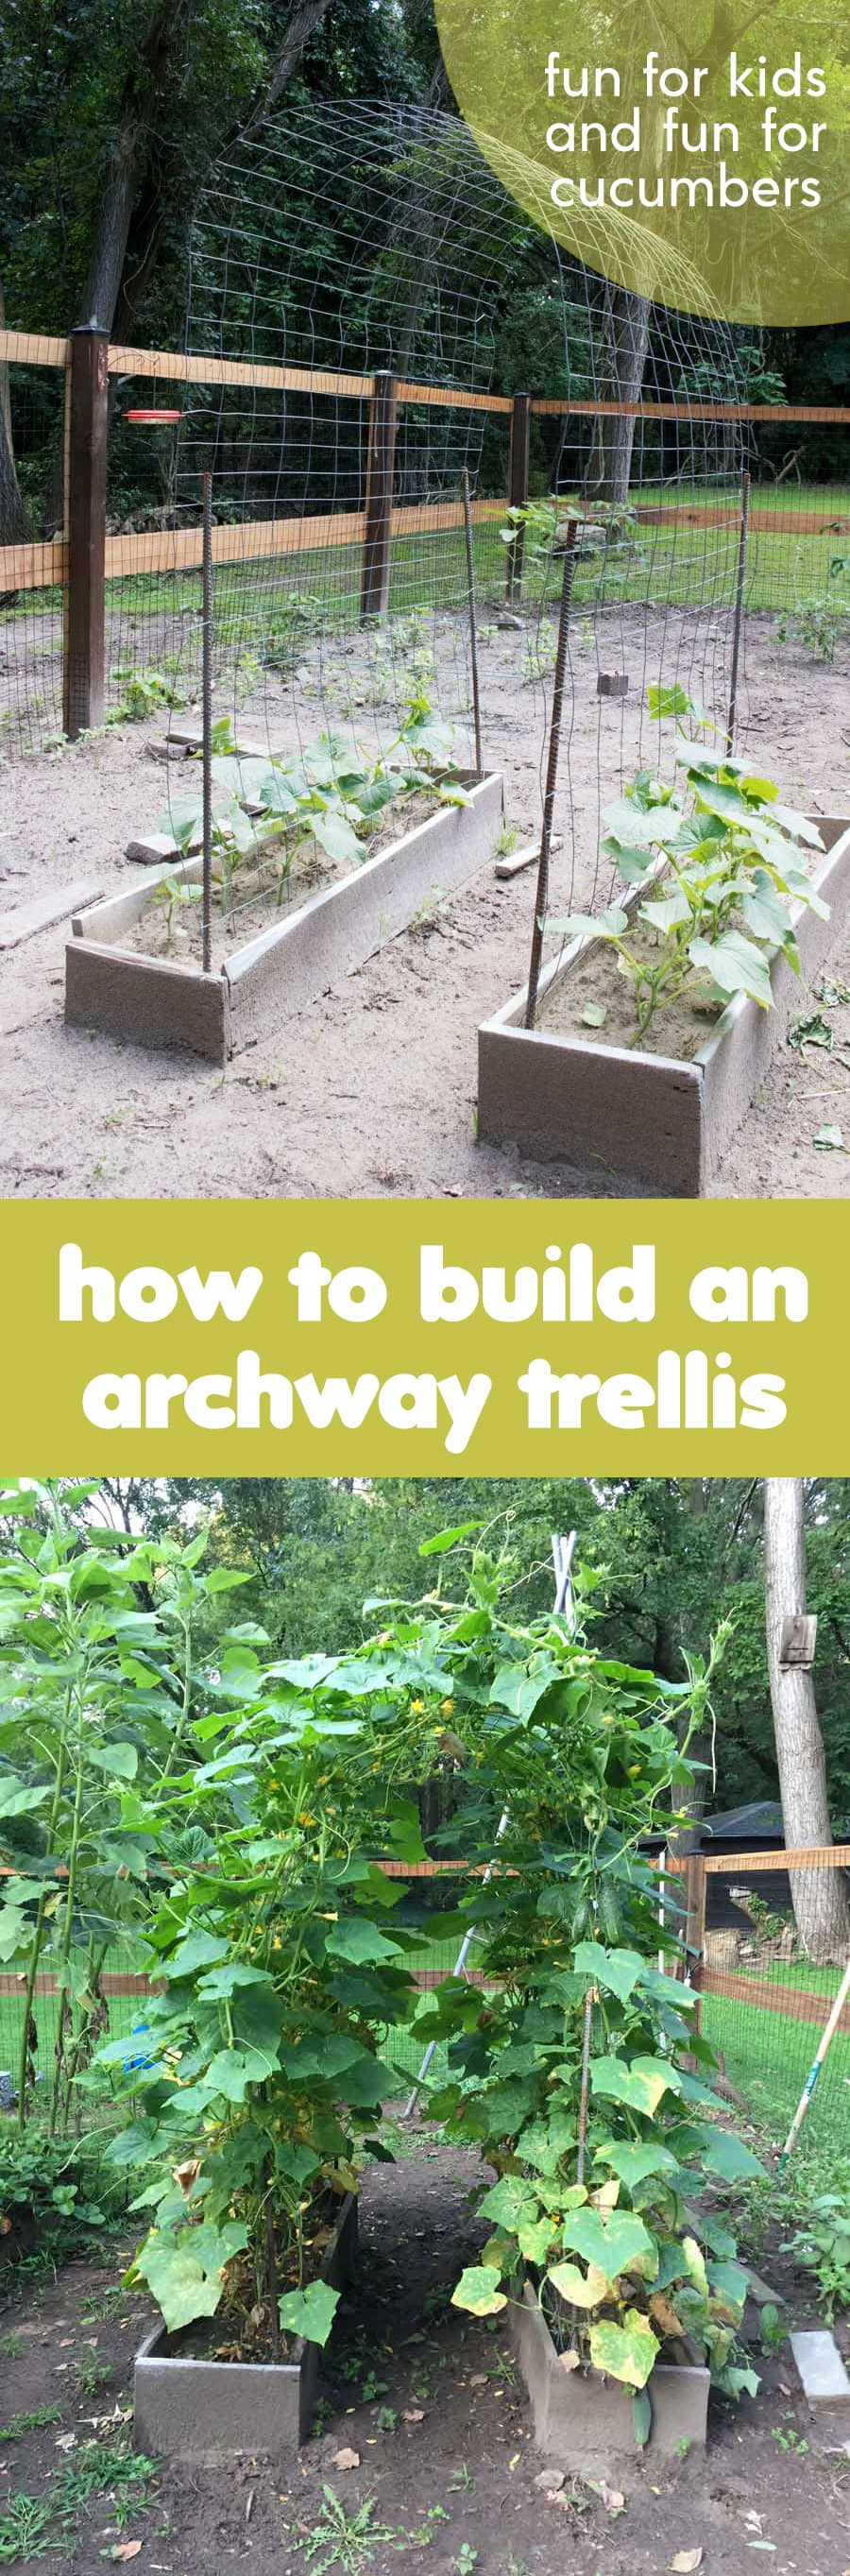 This DIY trellis is fun for kids to play in, and an easy way to grow lots of climbing vines in your garden – perfect for beans, nasturtiums, and cucumbers!